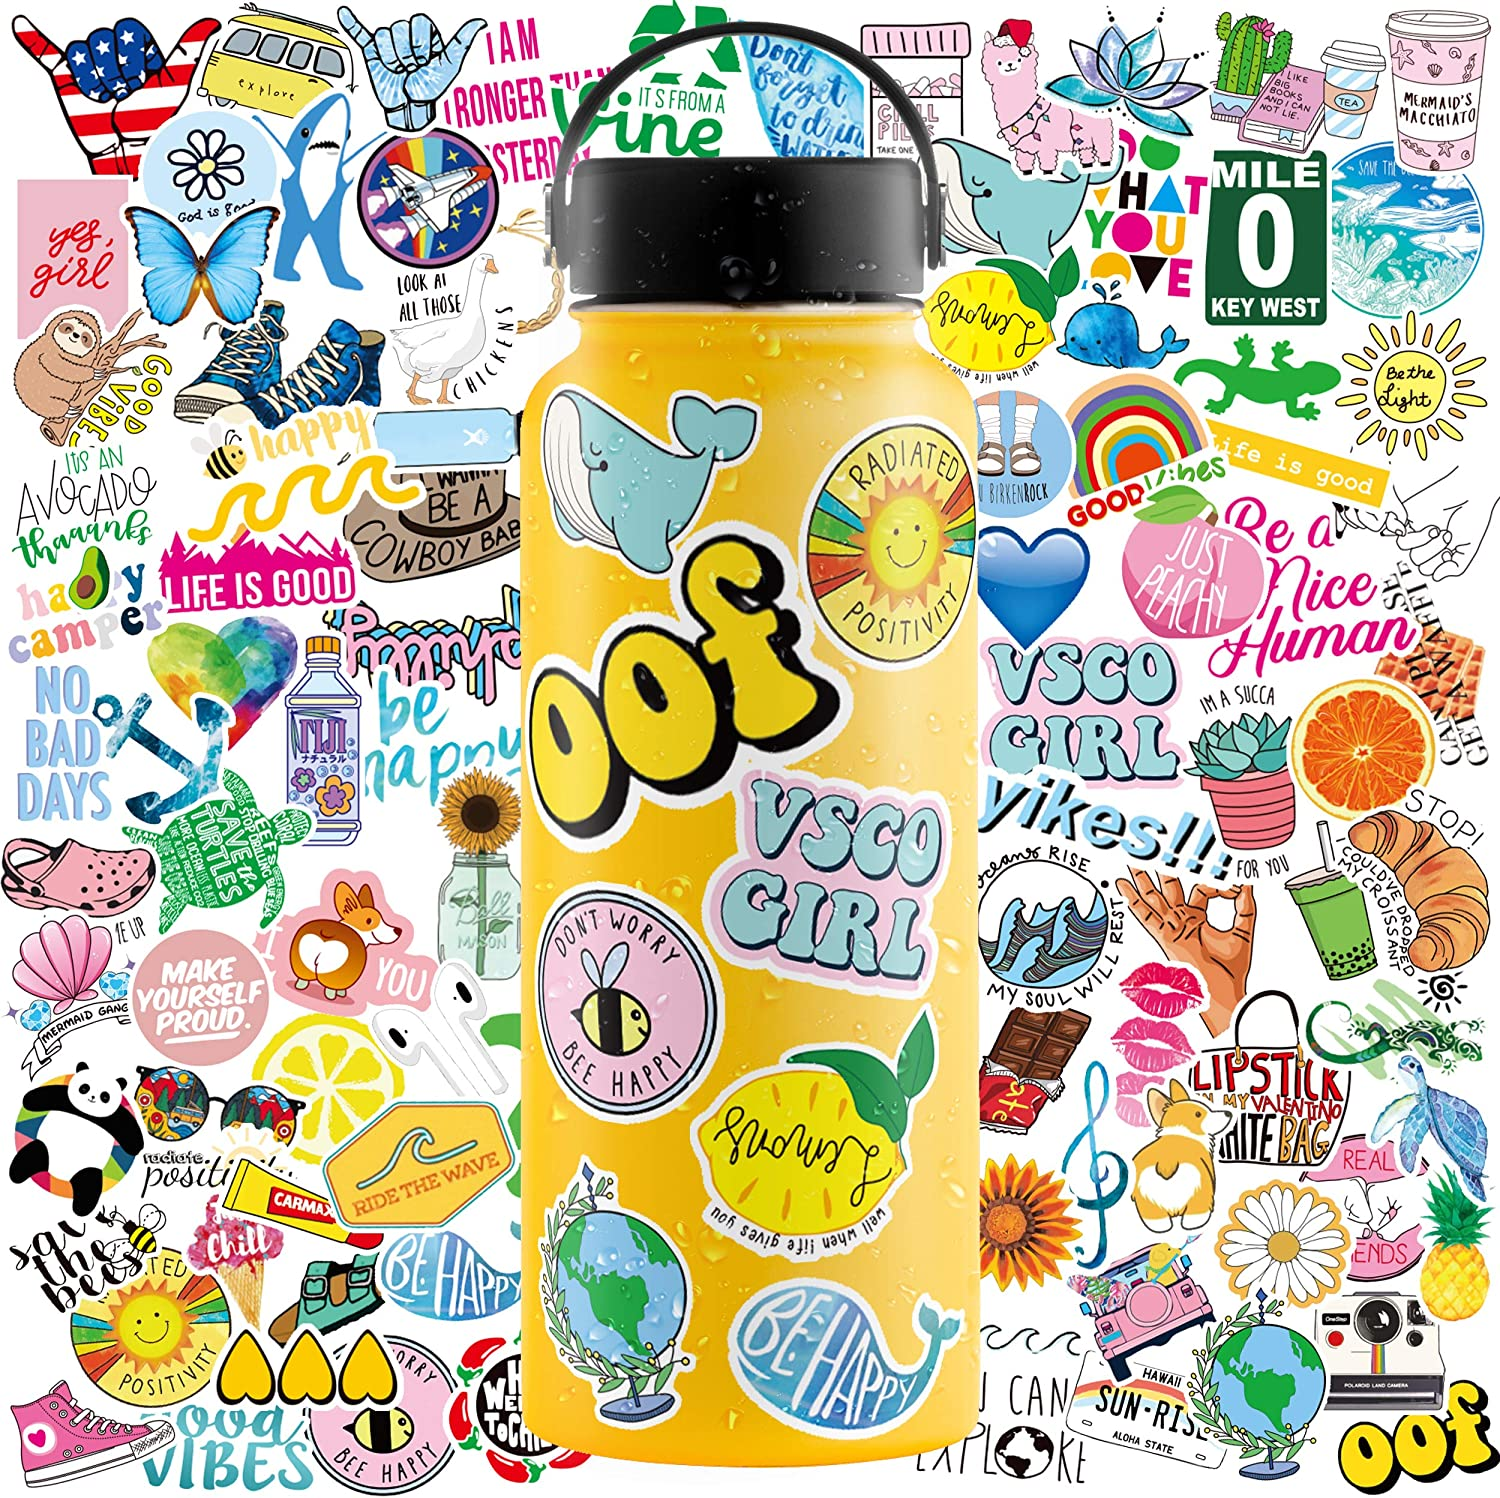 Water Bottle Stickers (100 Pack) – Vinyl Stickers for Hydroflasks, Laptop Stickers – Cute Stickers for Water Bottles with Inspirational Quotes, Fade-Proof, Waterproof Stickers for Girls